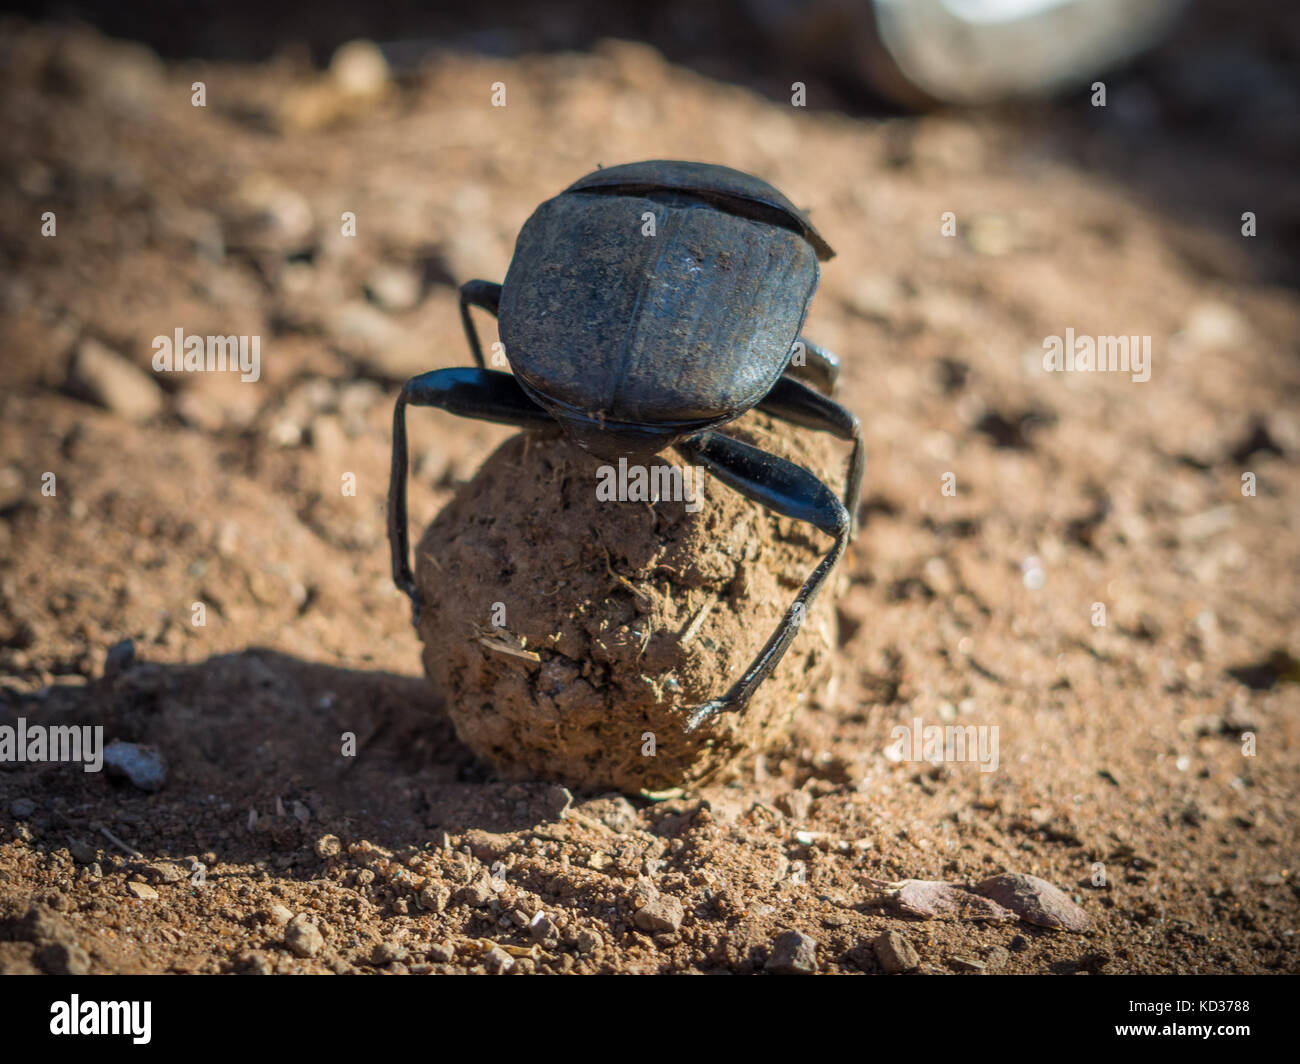 African dung scarab beetle or Scarabaeus sacer rolling his dung ball, Chobe National Park, Botswana, Southern Africa - Stock Image